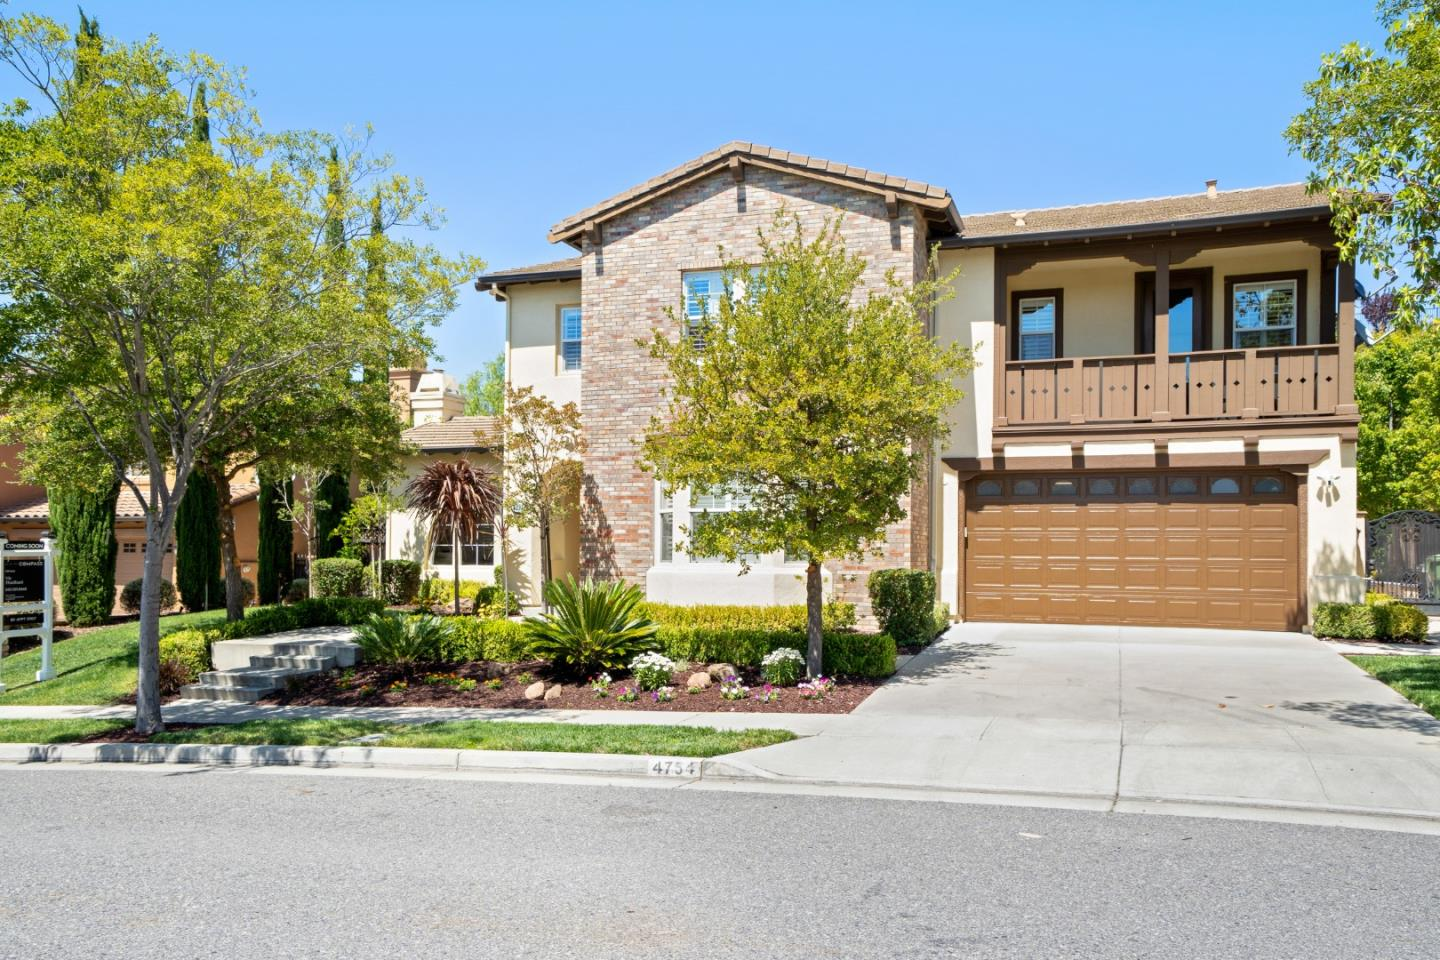 Detail Gallery Image 1 of 1 For 4754 Mountaire Pl, San Jose, CA 95138 - 5 Beds | 4/1 Baths